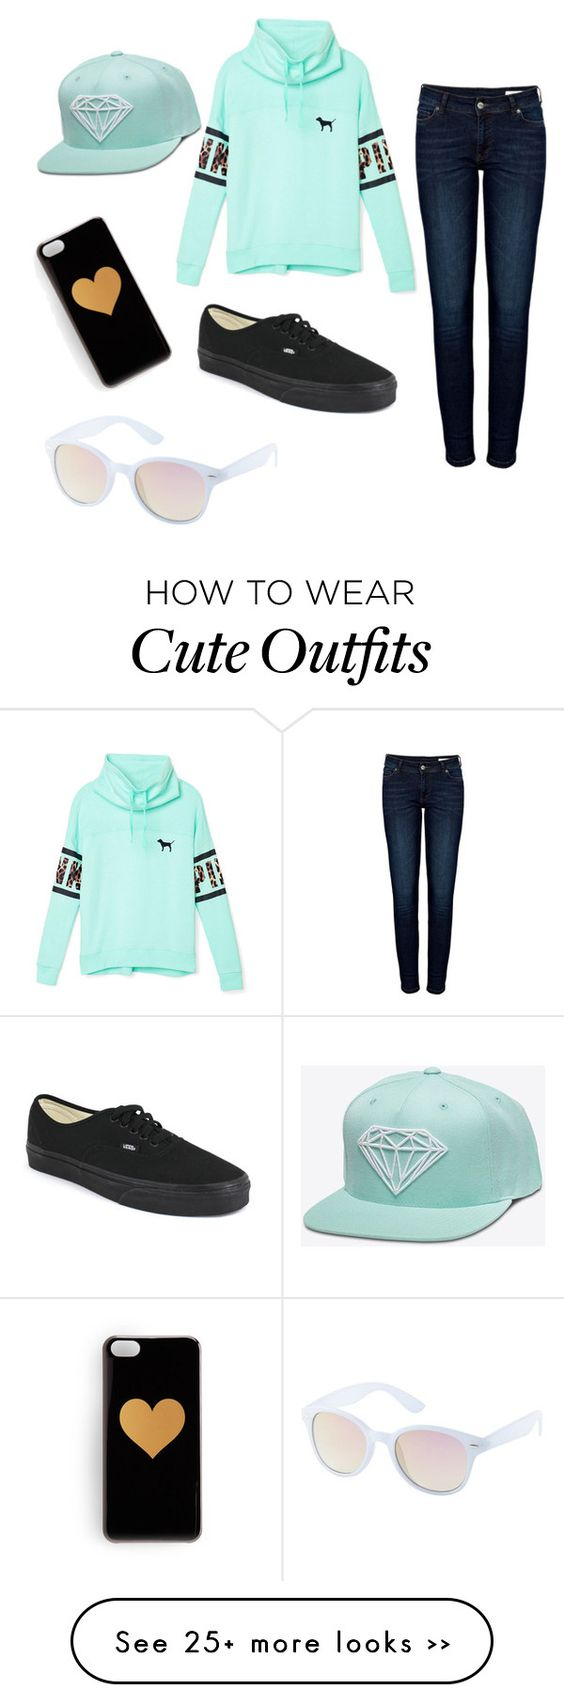 """""""Cute outfit for teen girls"""" by krspillman on Polyvore"""